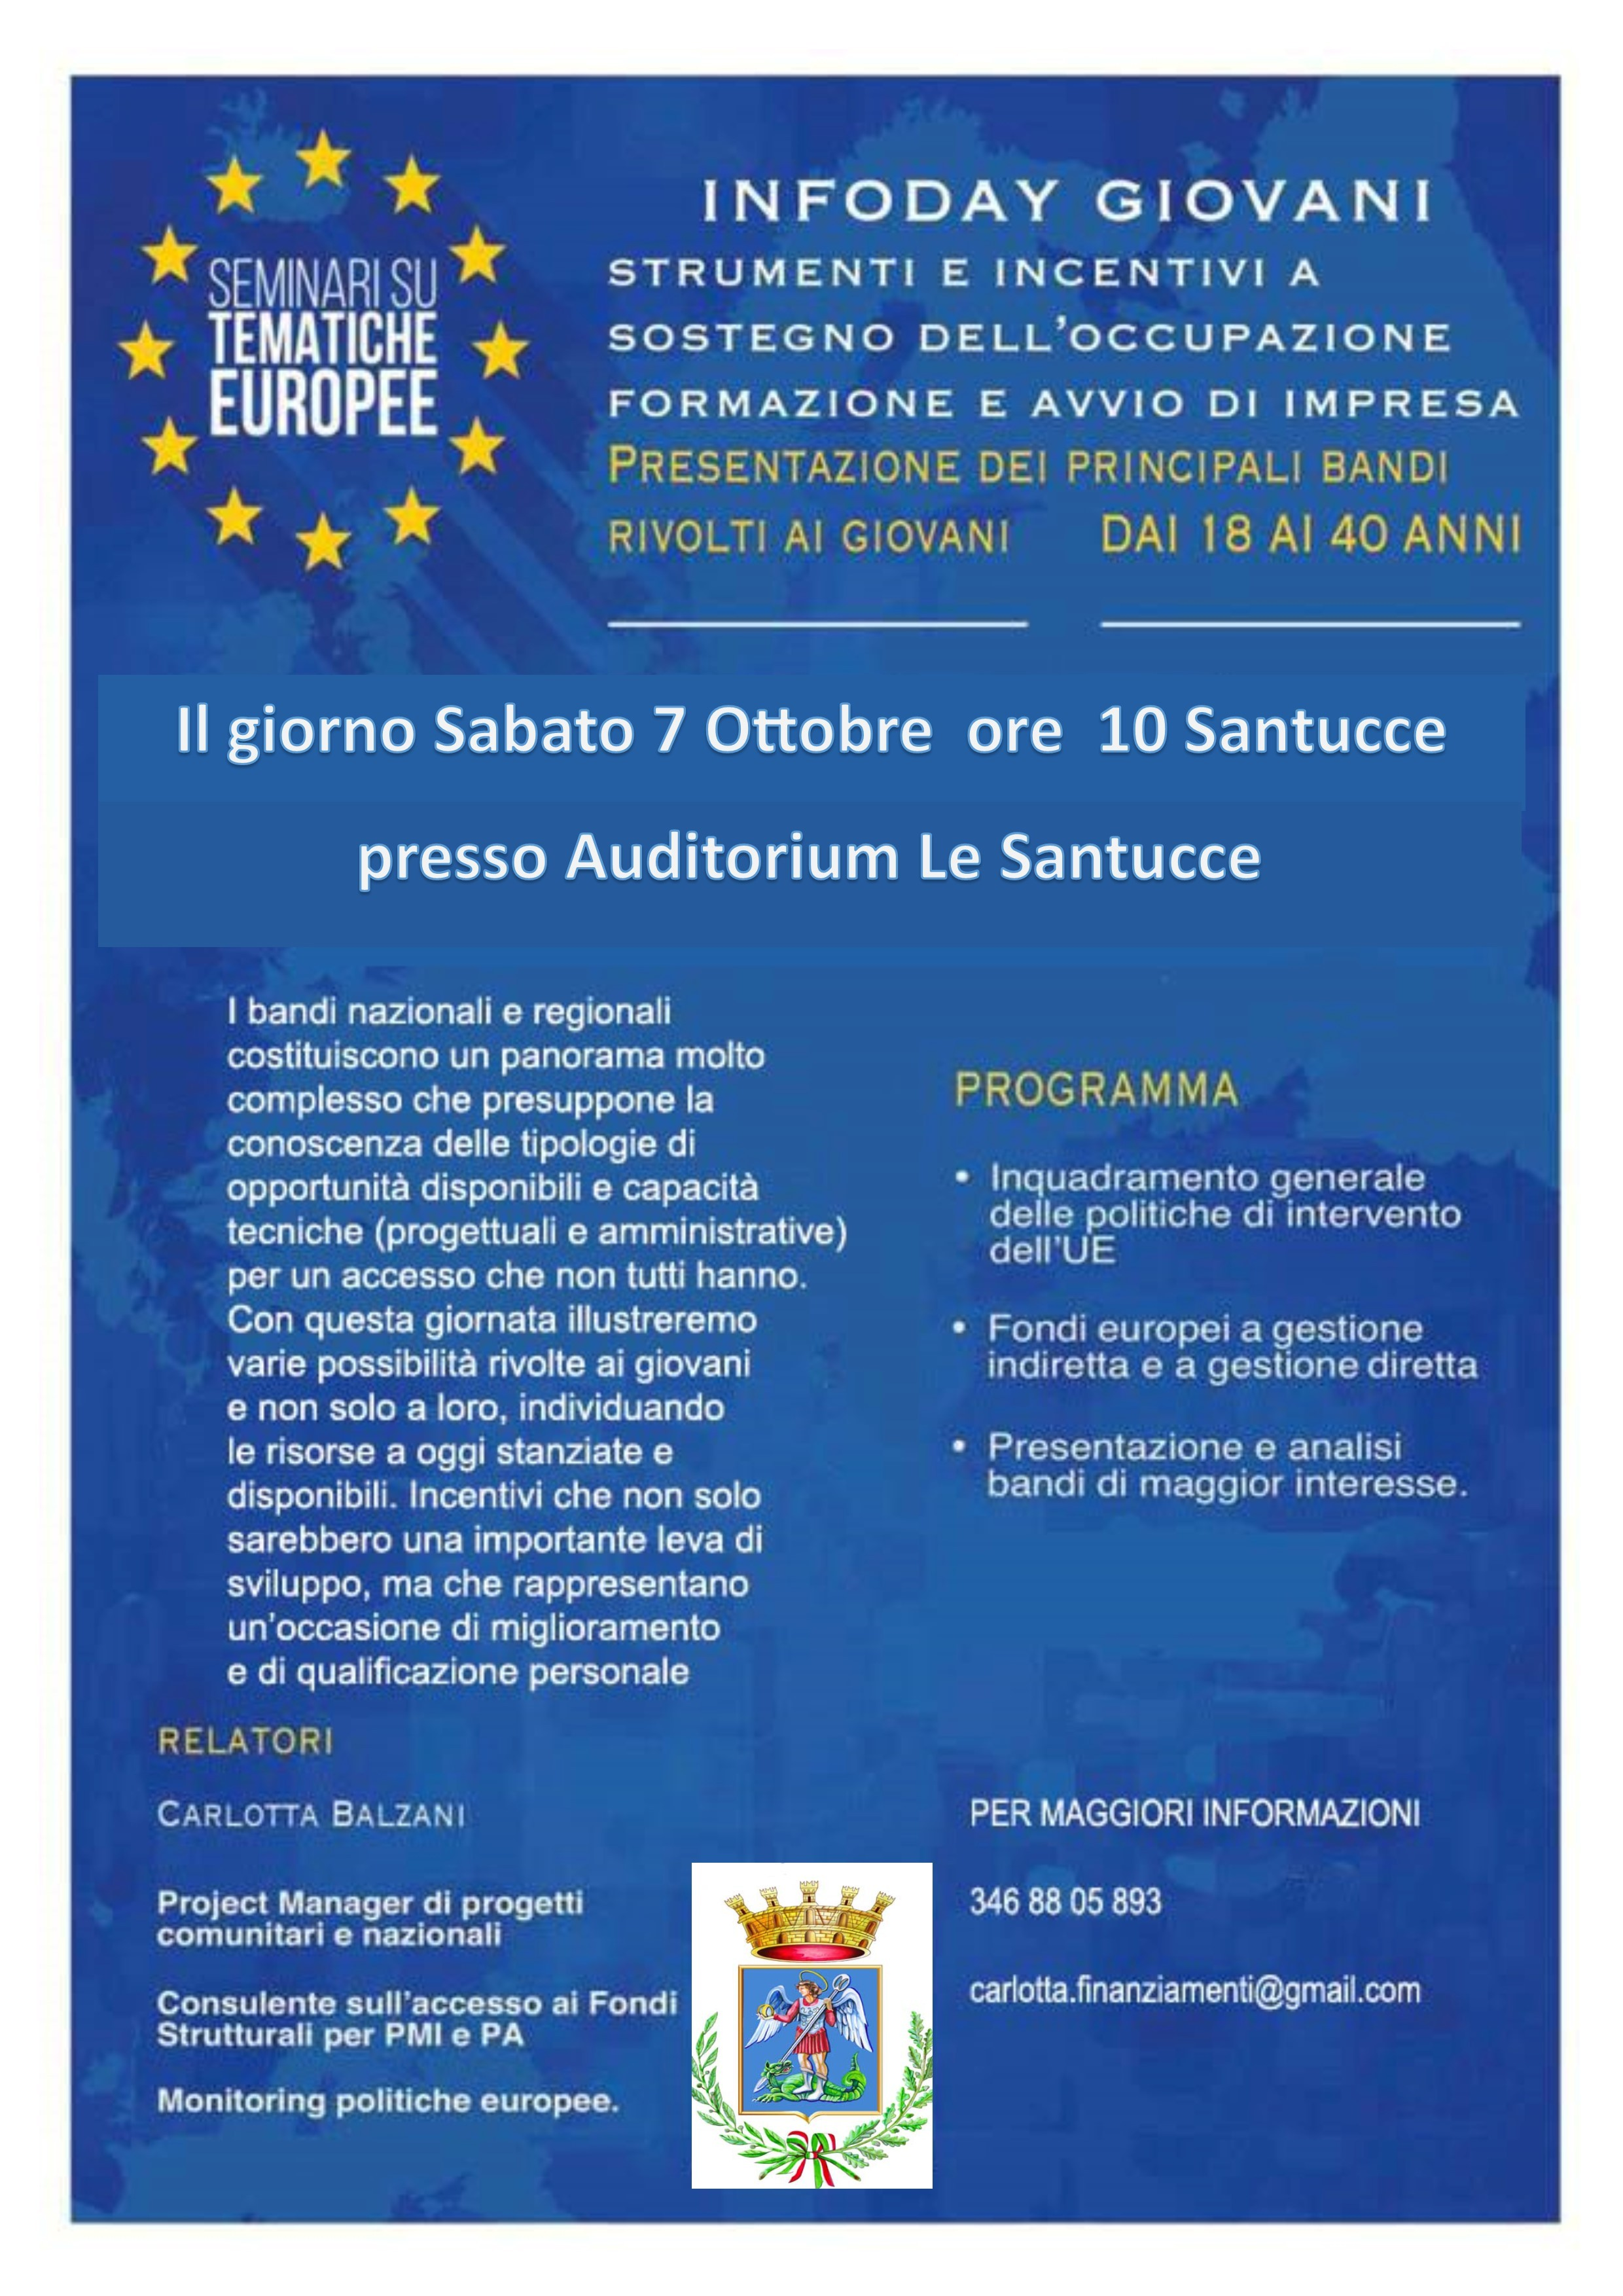 InfoDay Giovani all'auditorium Le Santucce